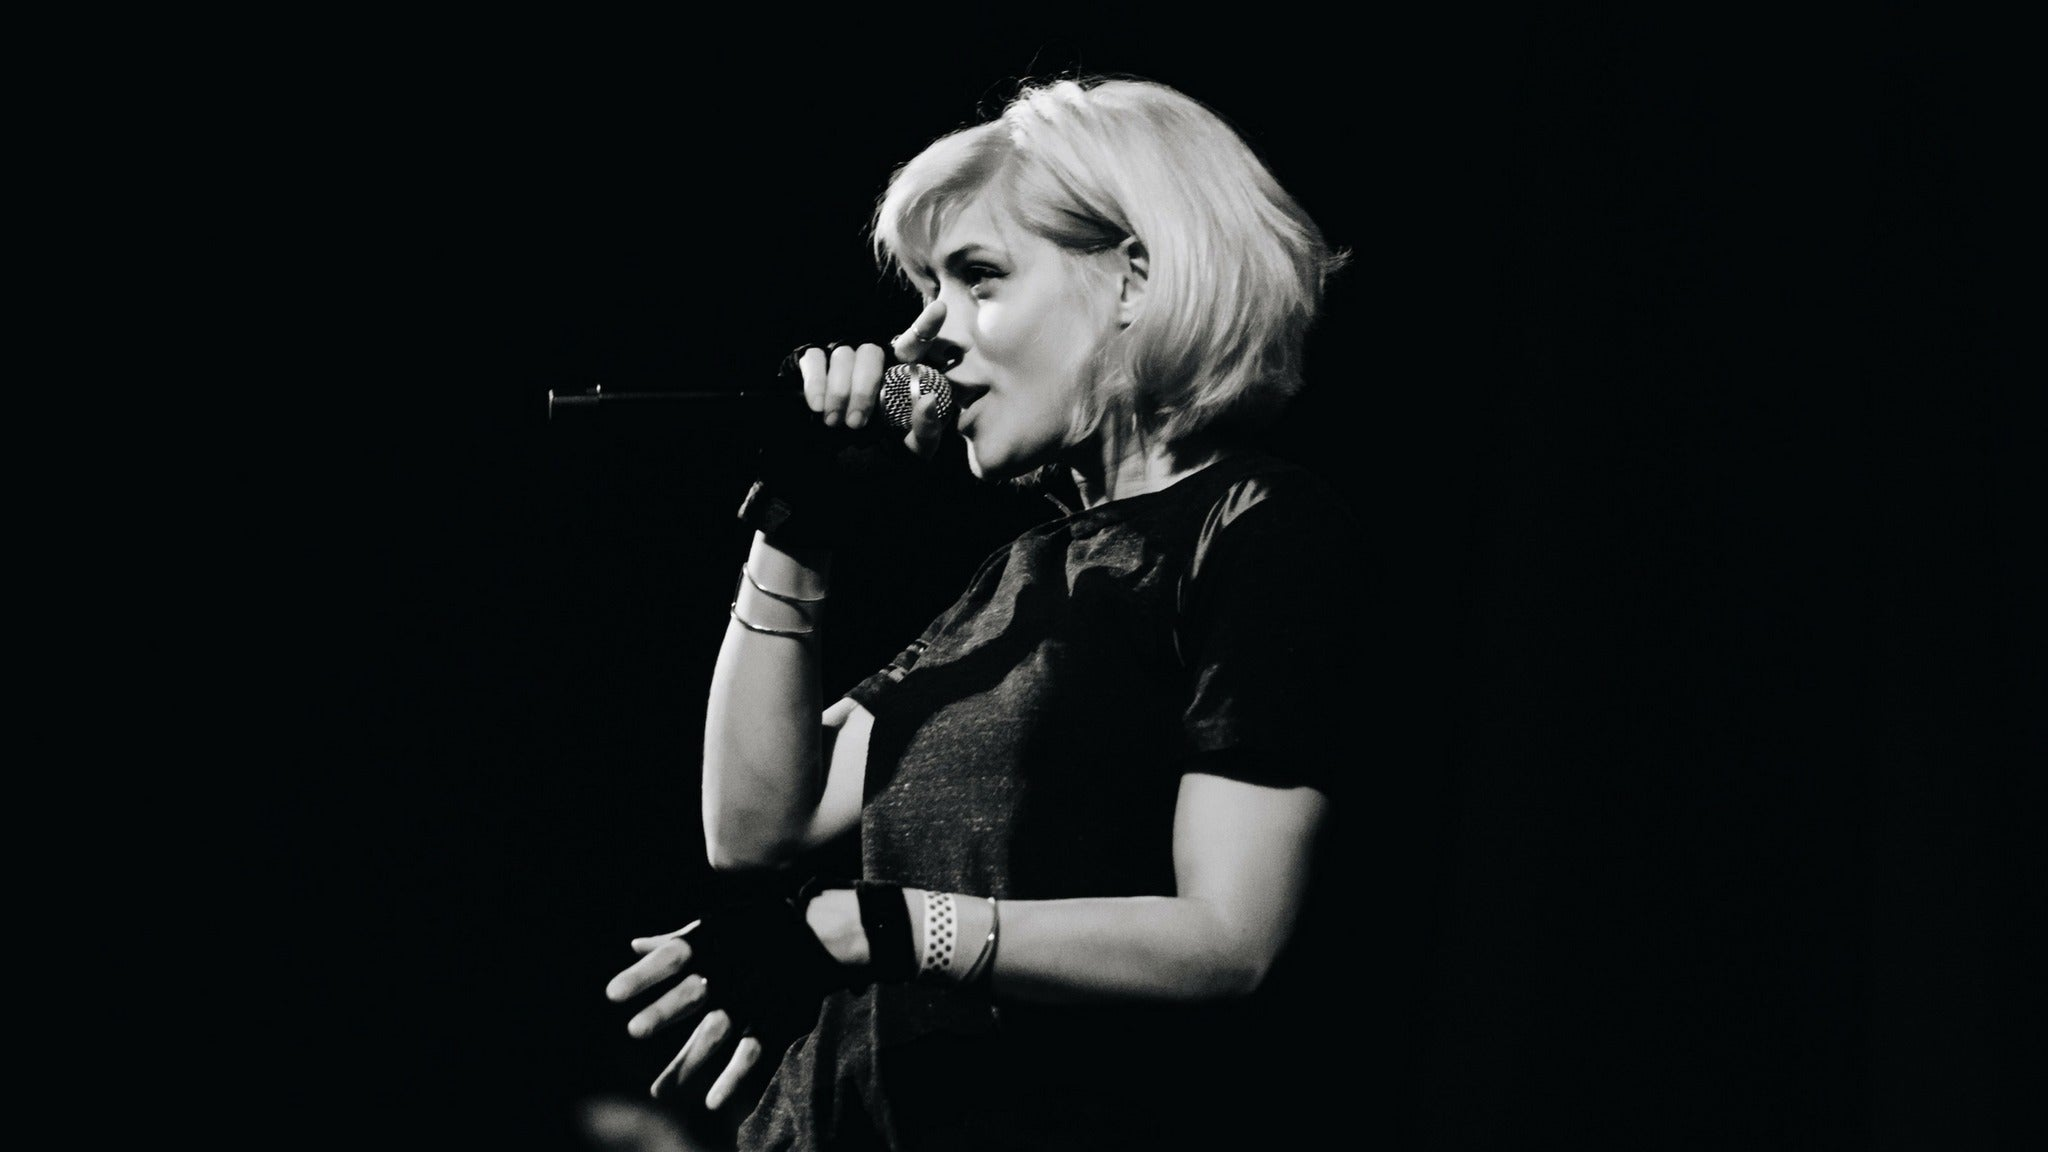 Dessa at Orchestra Hall-MN - Minneapolis, MN 55403